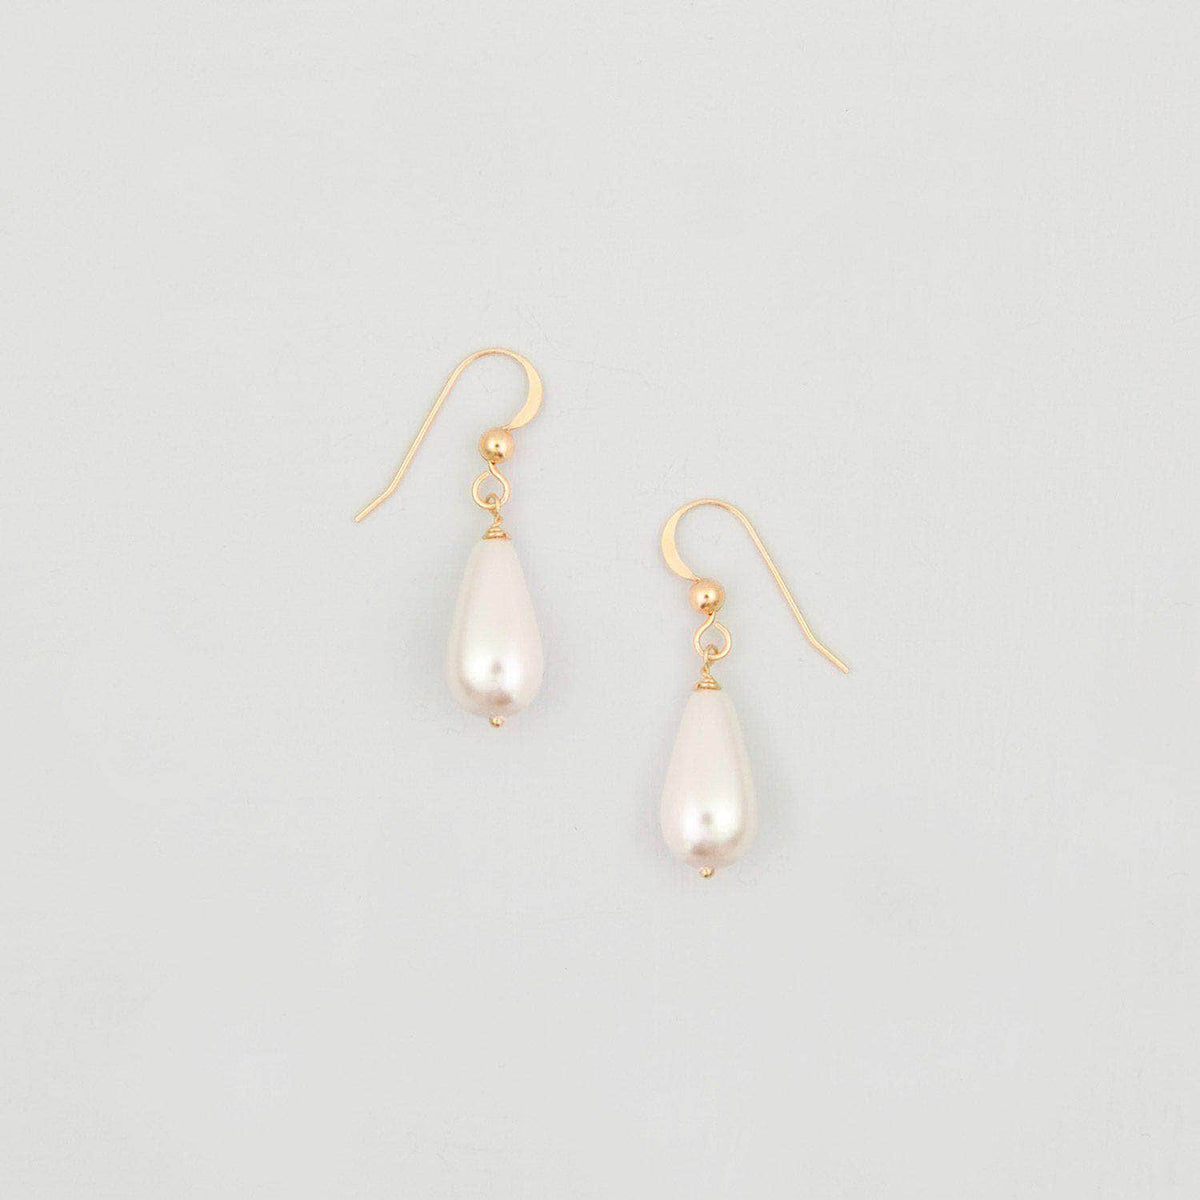 Wedding Earring Pearl wedding earrings rose gold (different sizes available) - 'Hermi'